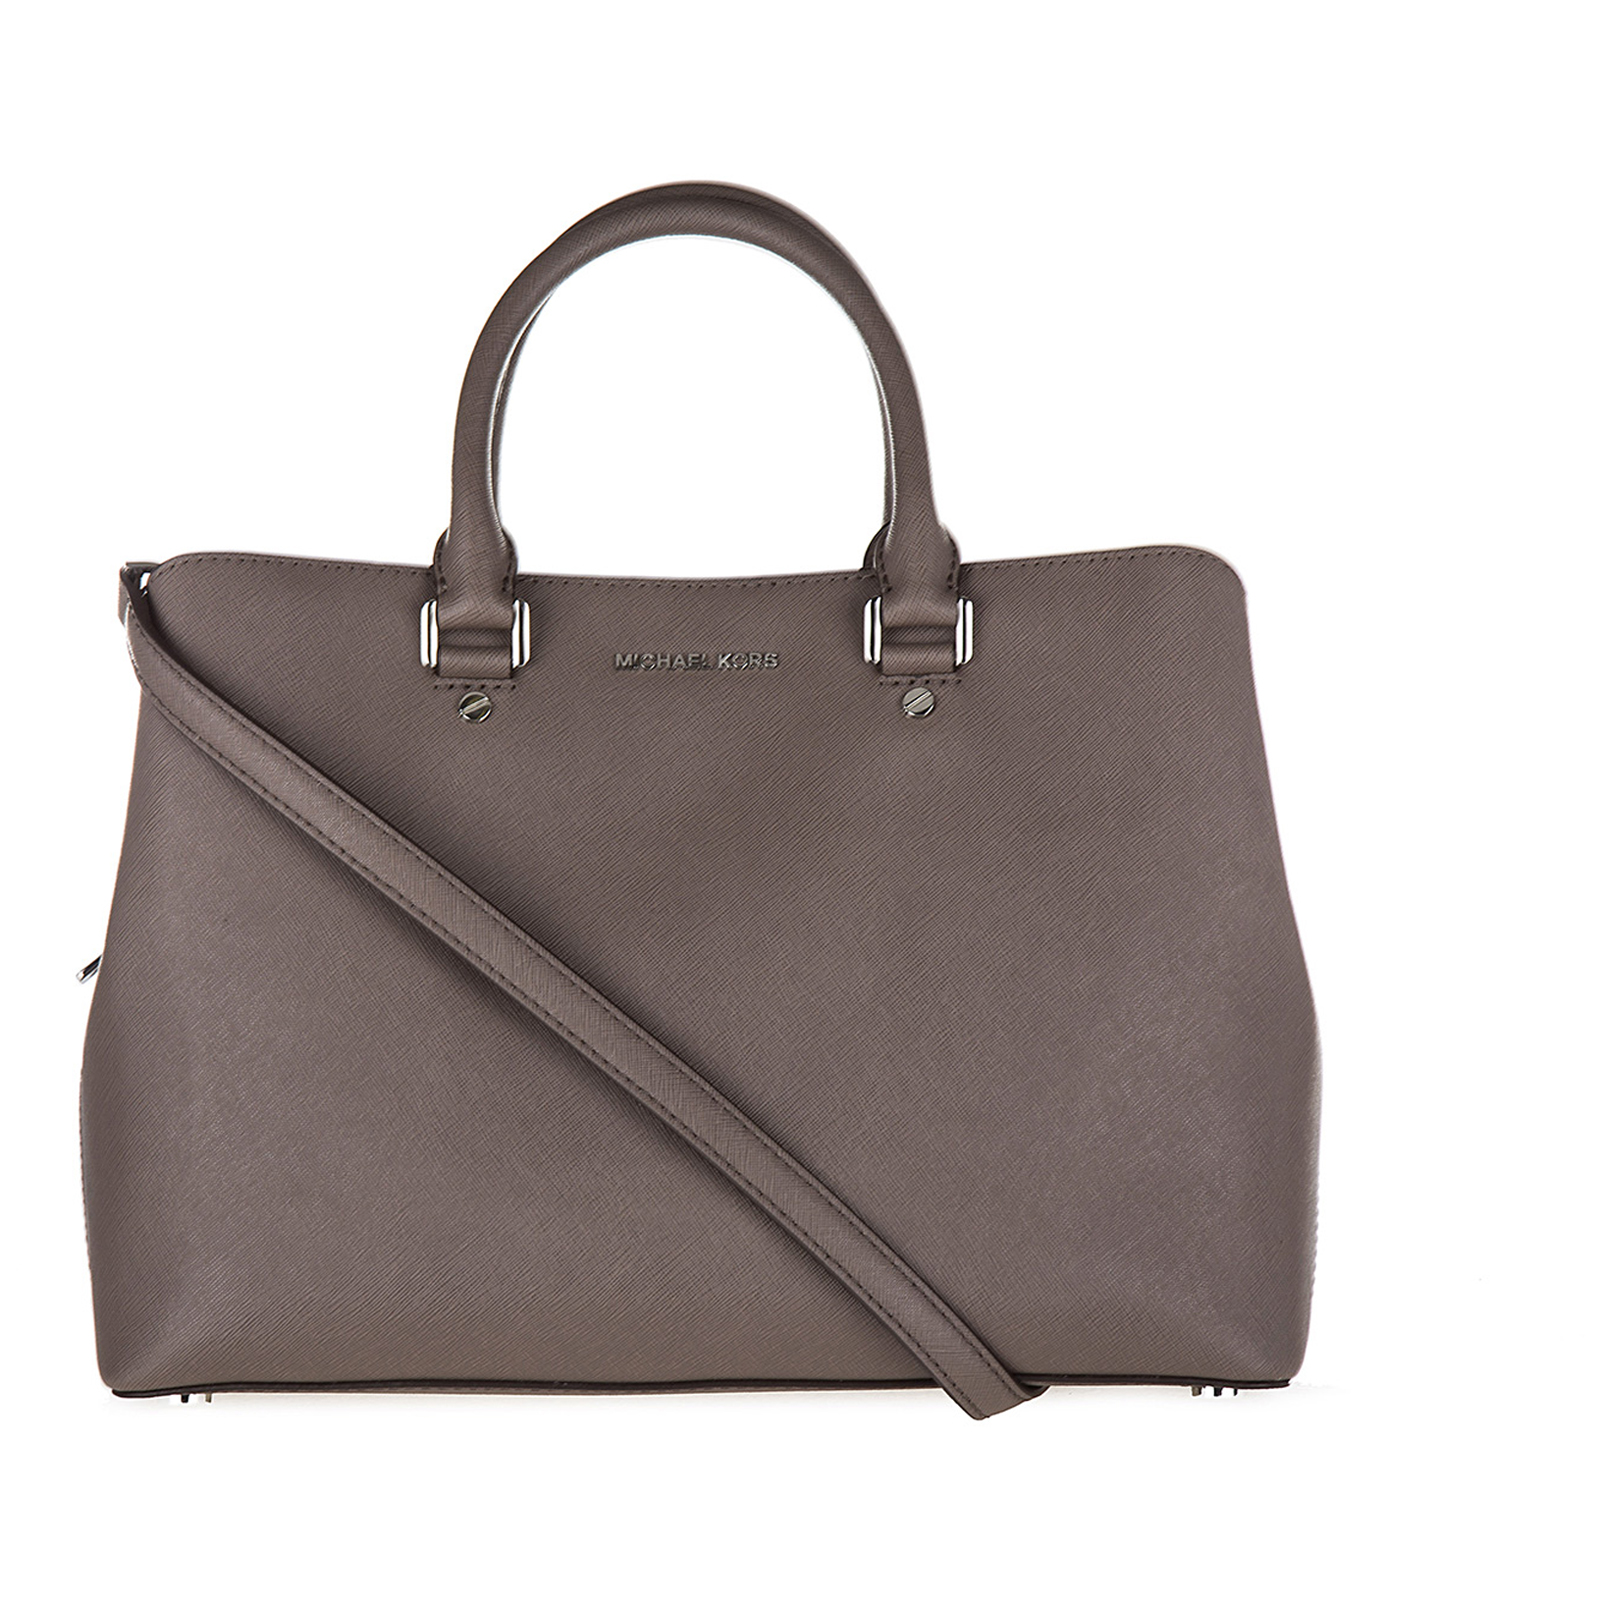 Borsa donna a mano shopping in pelle savannah satchel